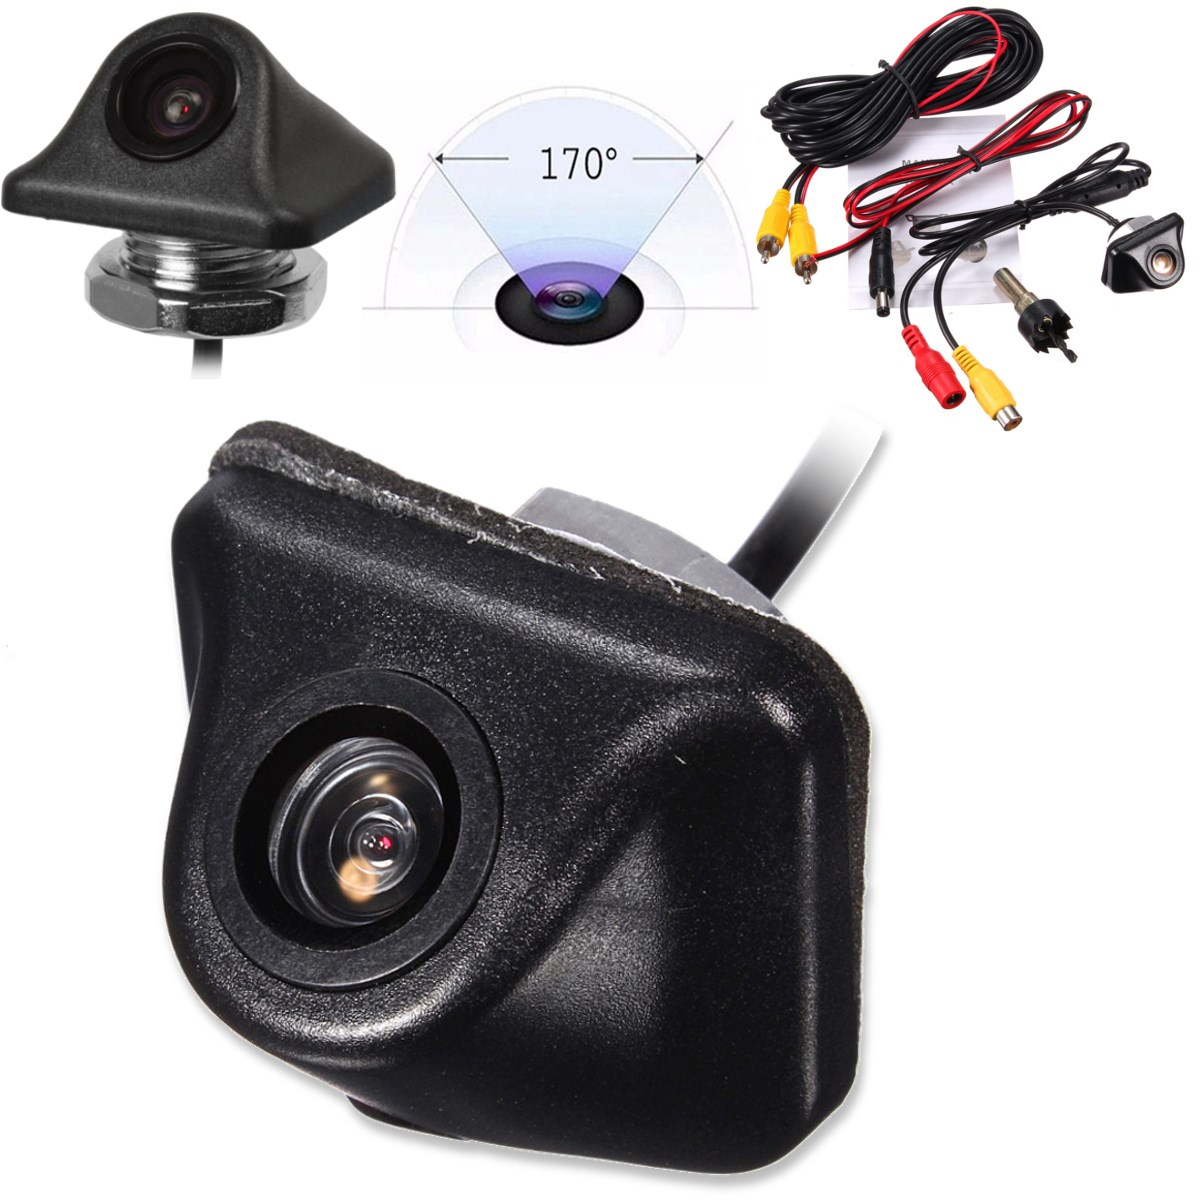 Universal HD CCD Car Rearview font b Camera b font Back Up 170 Degree Backup Parking